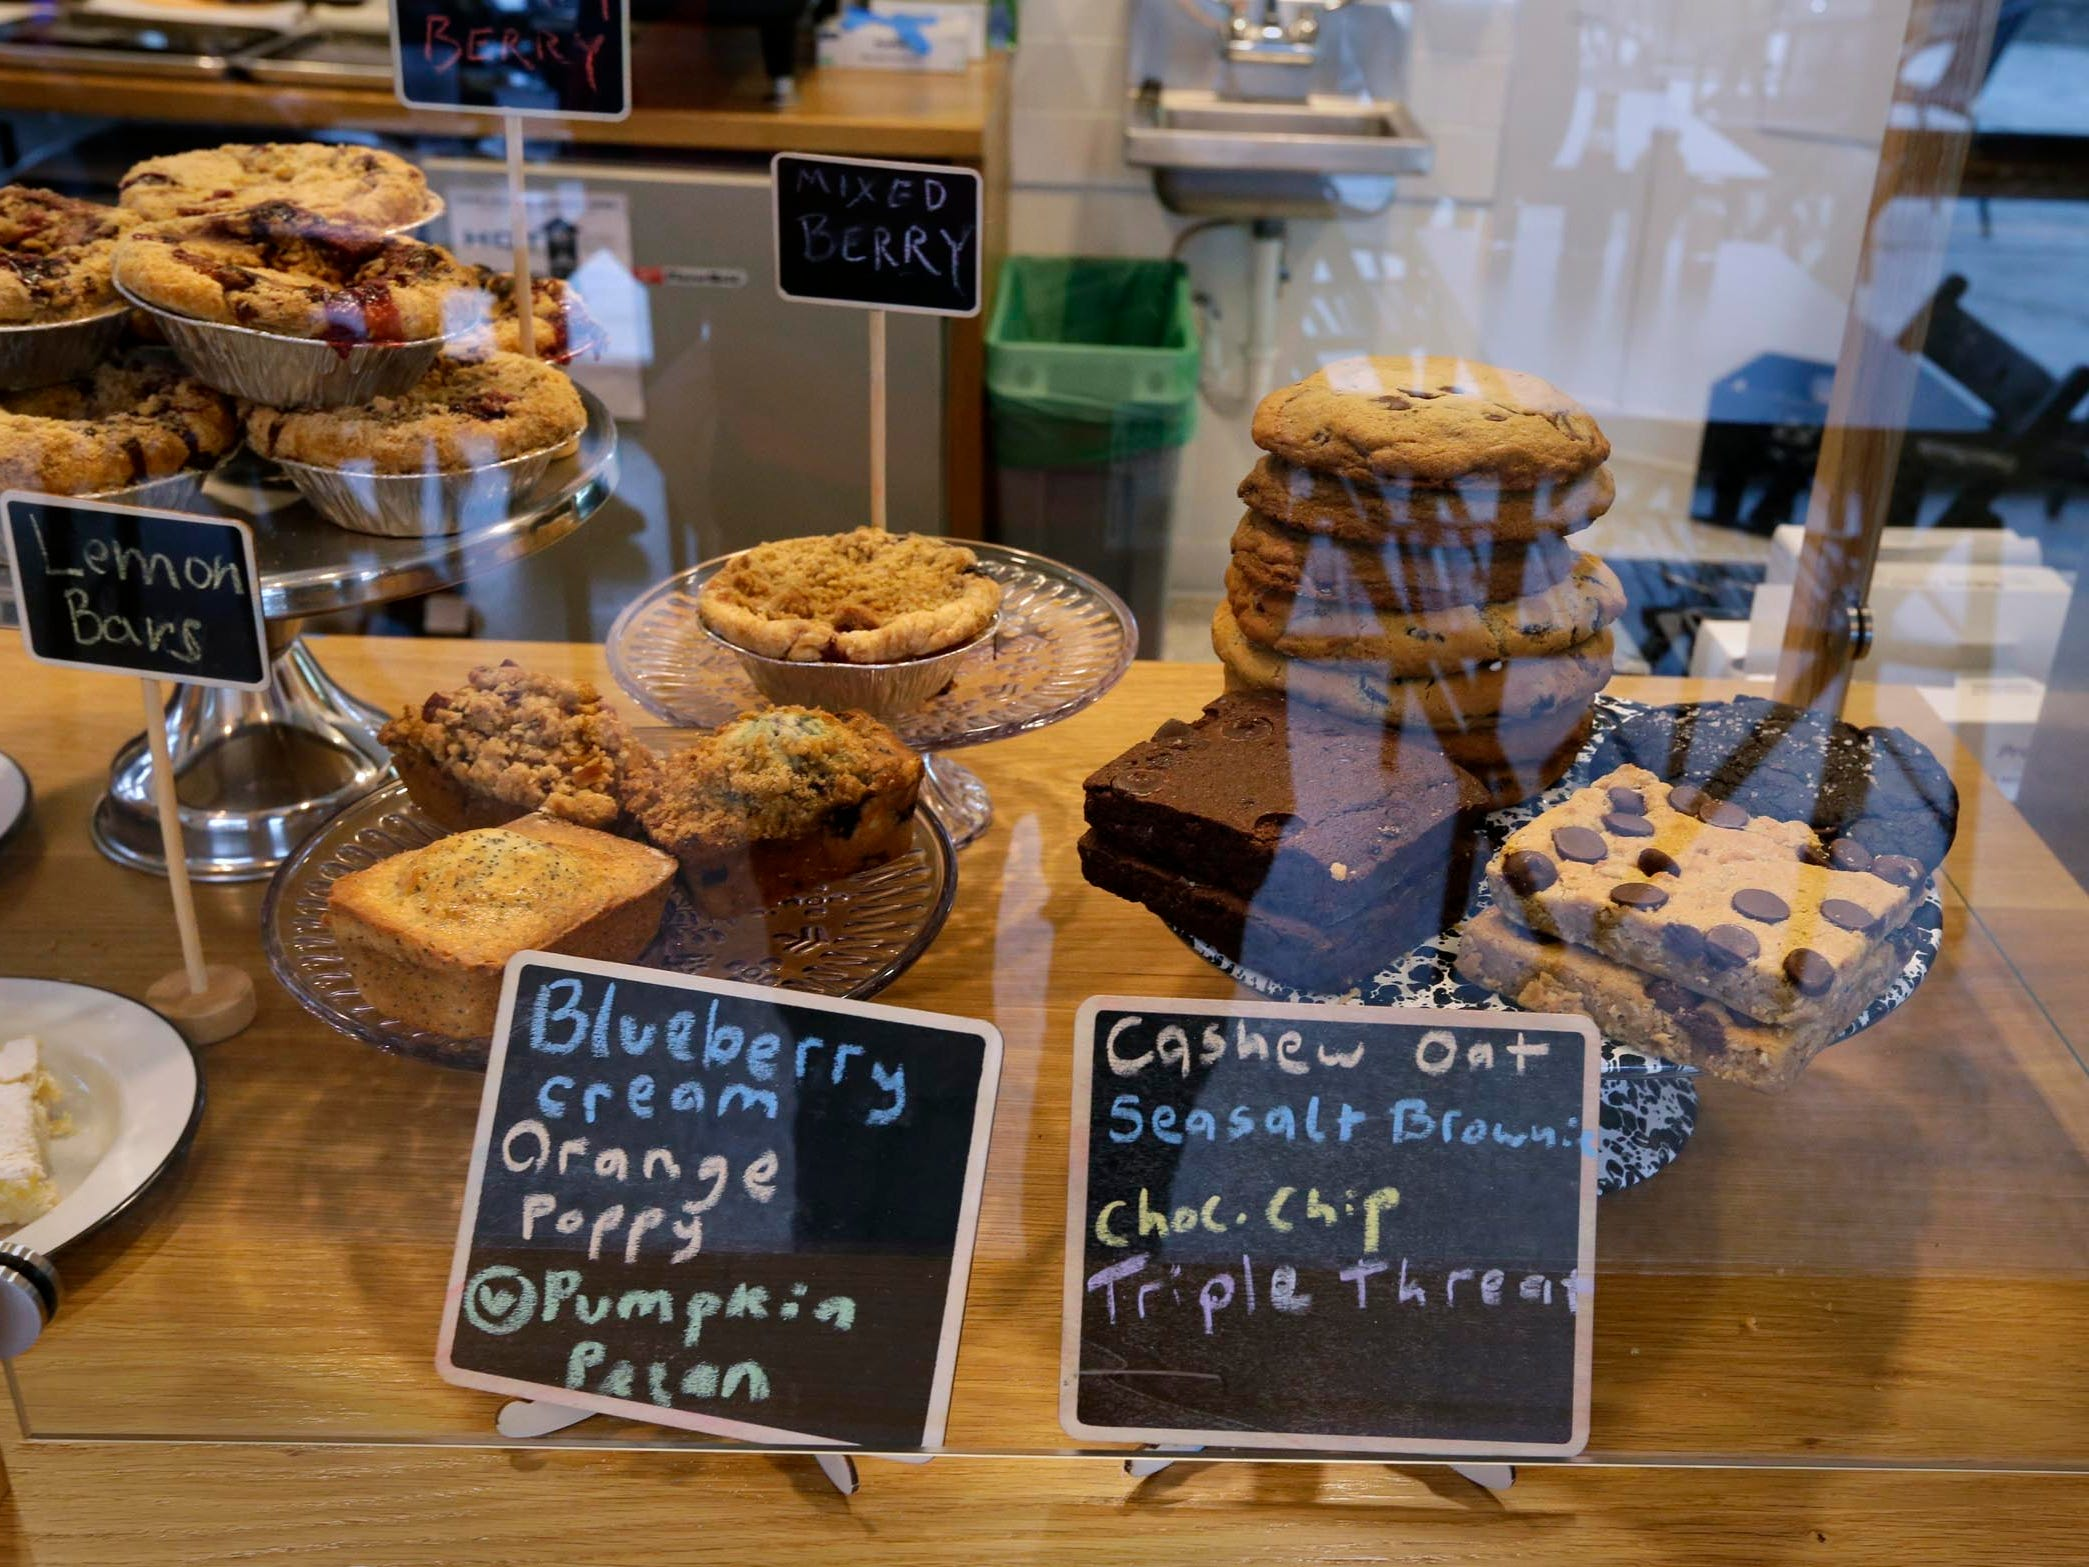 Salted brownies, Sweet breads, Triple Threat Cookies and other treats are on the menu at  SmallPie in Bay View.